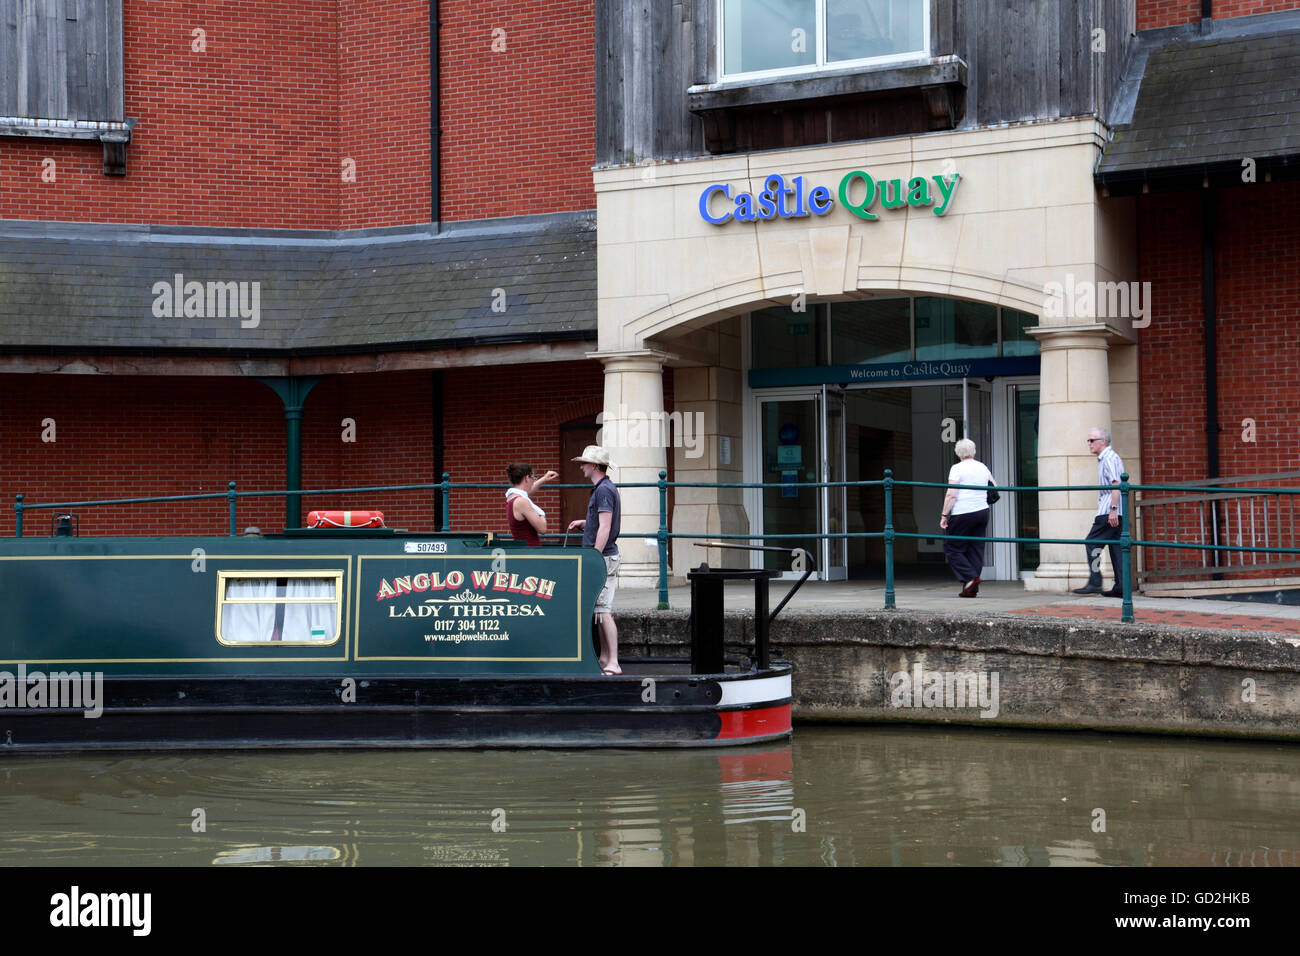 An Anglo Welsh hire narrowboat on the Oxford Canal in Banbury next to the Castle Quay shopping centre - Stock Image